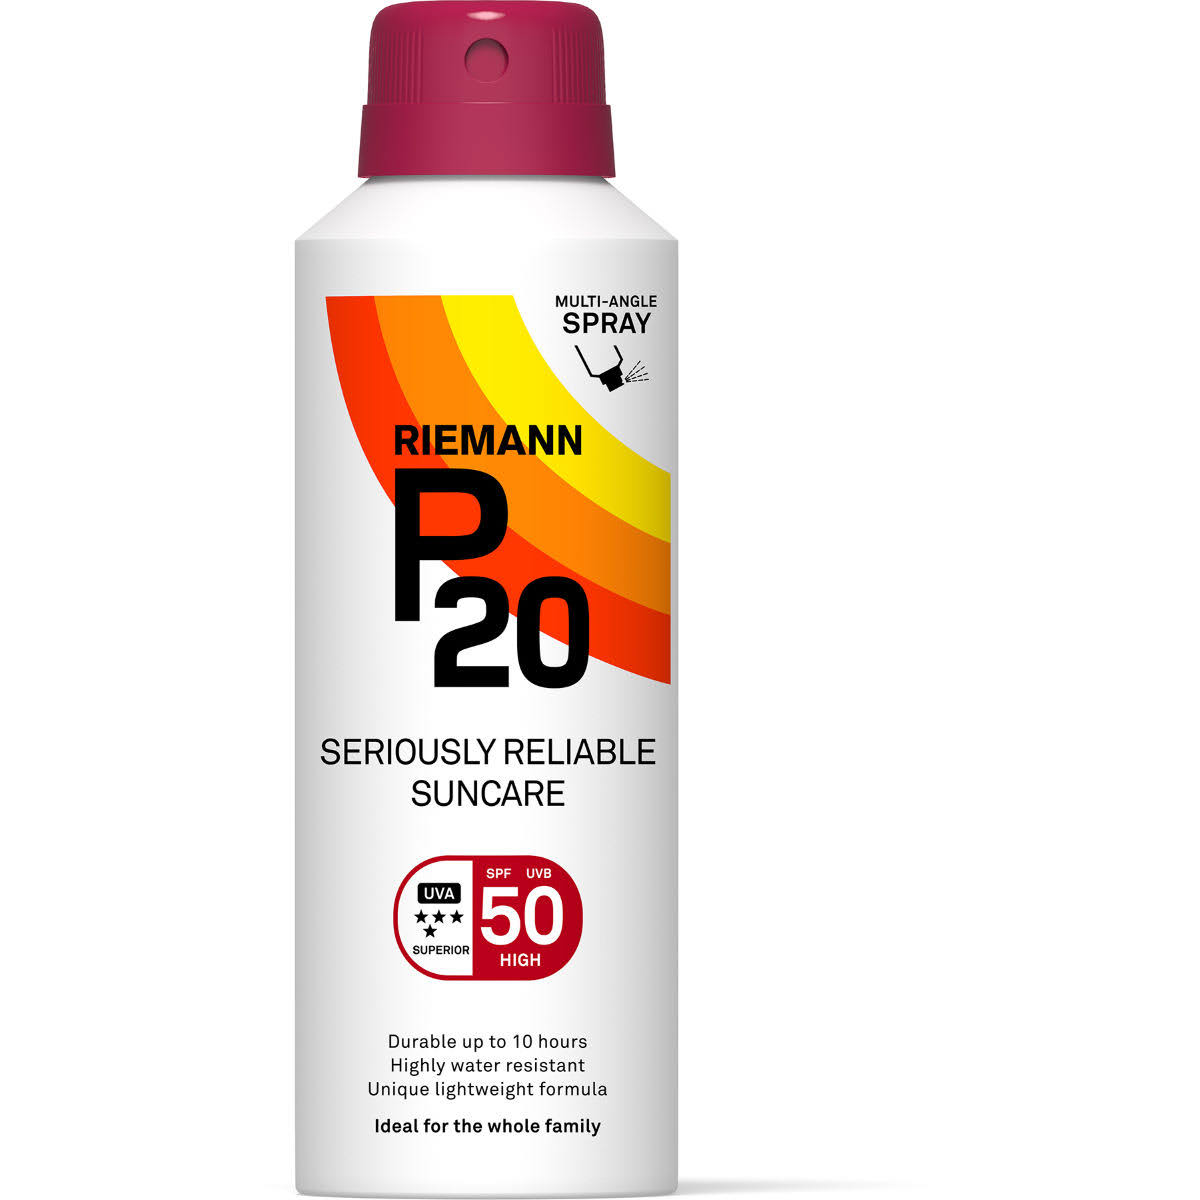 Riemann P20 Seriously Reliable Suncare - SPF 50, 150ml